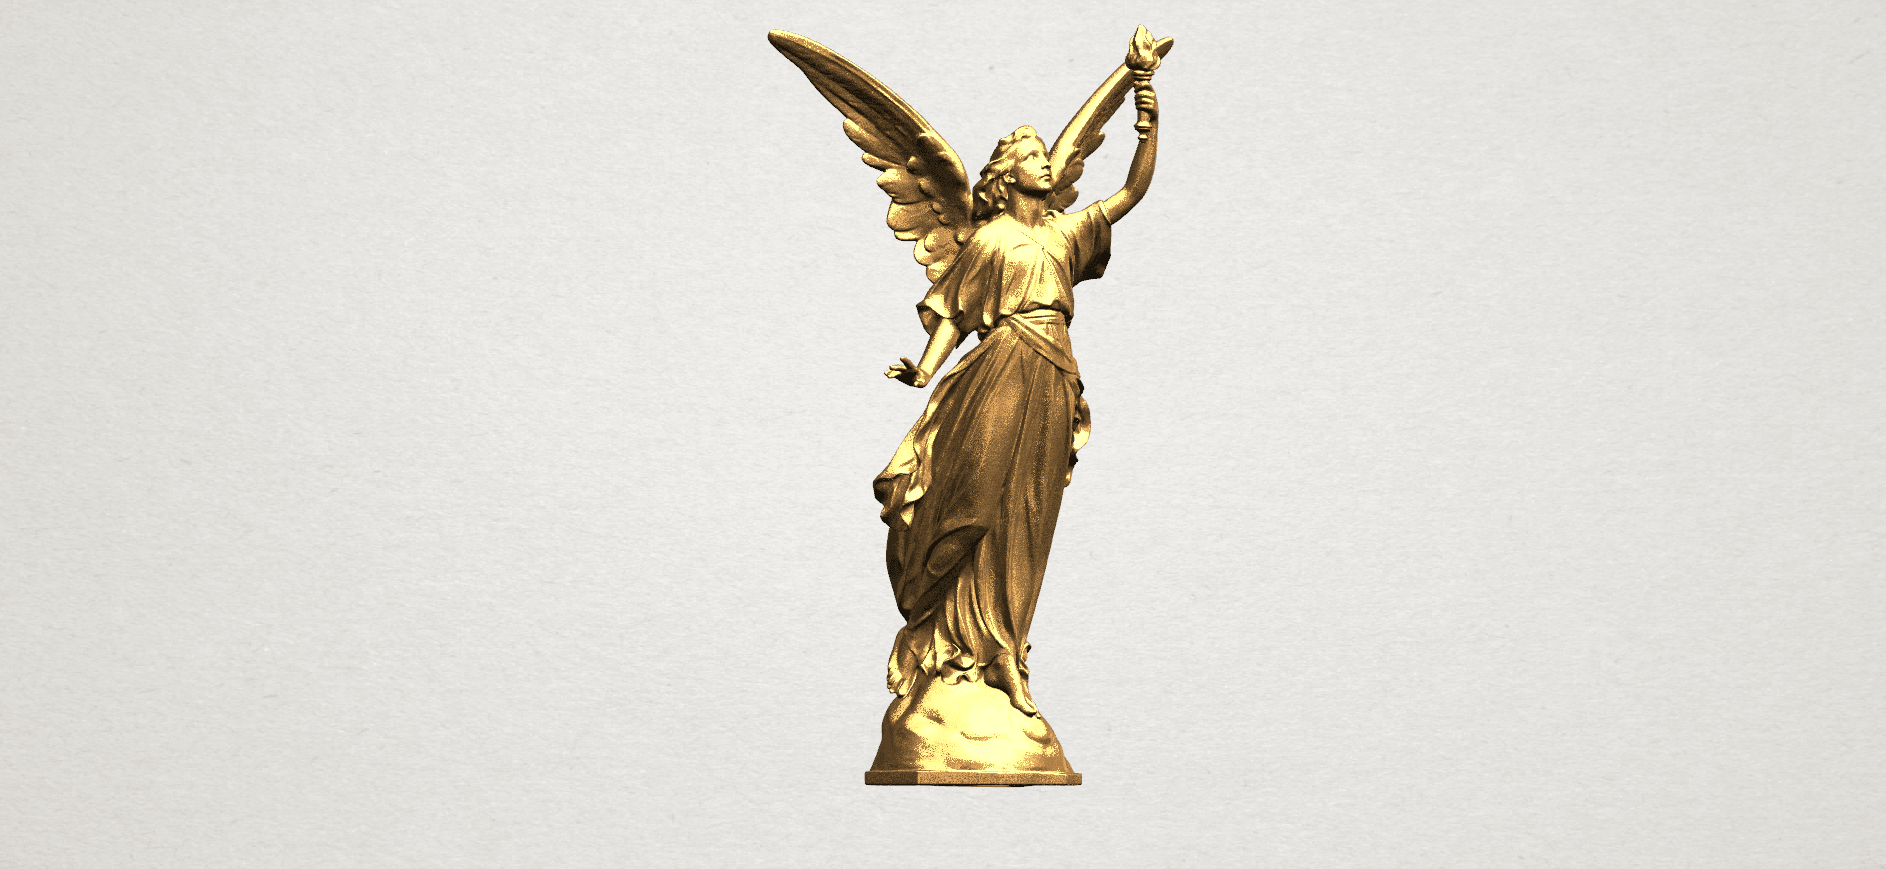 Statue 01 - A07.png Download free STL file Statue 01 • Object to 3D print, GeorgesNikkei